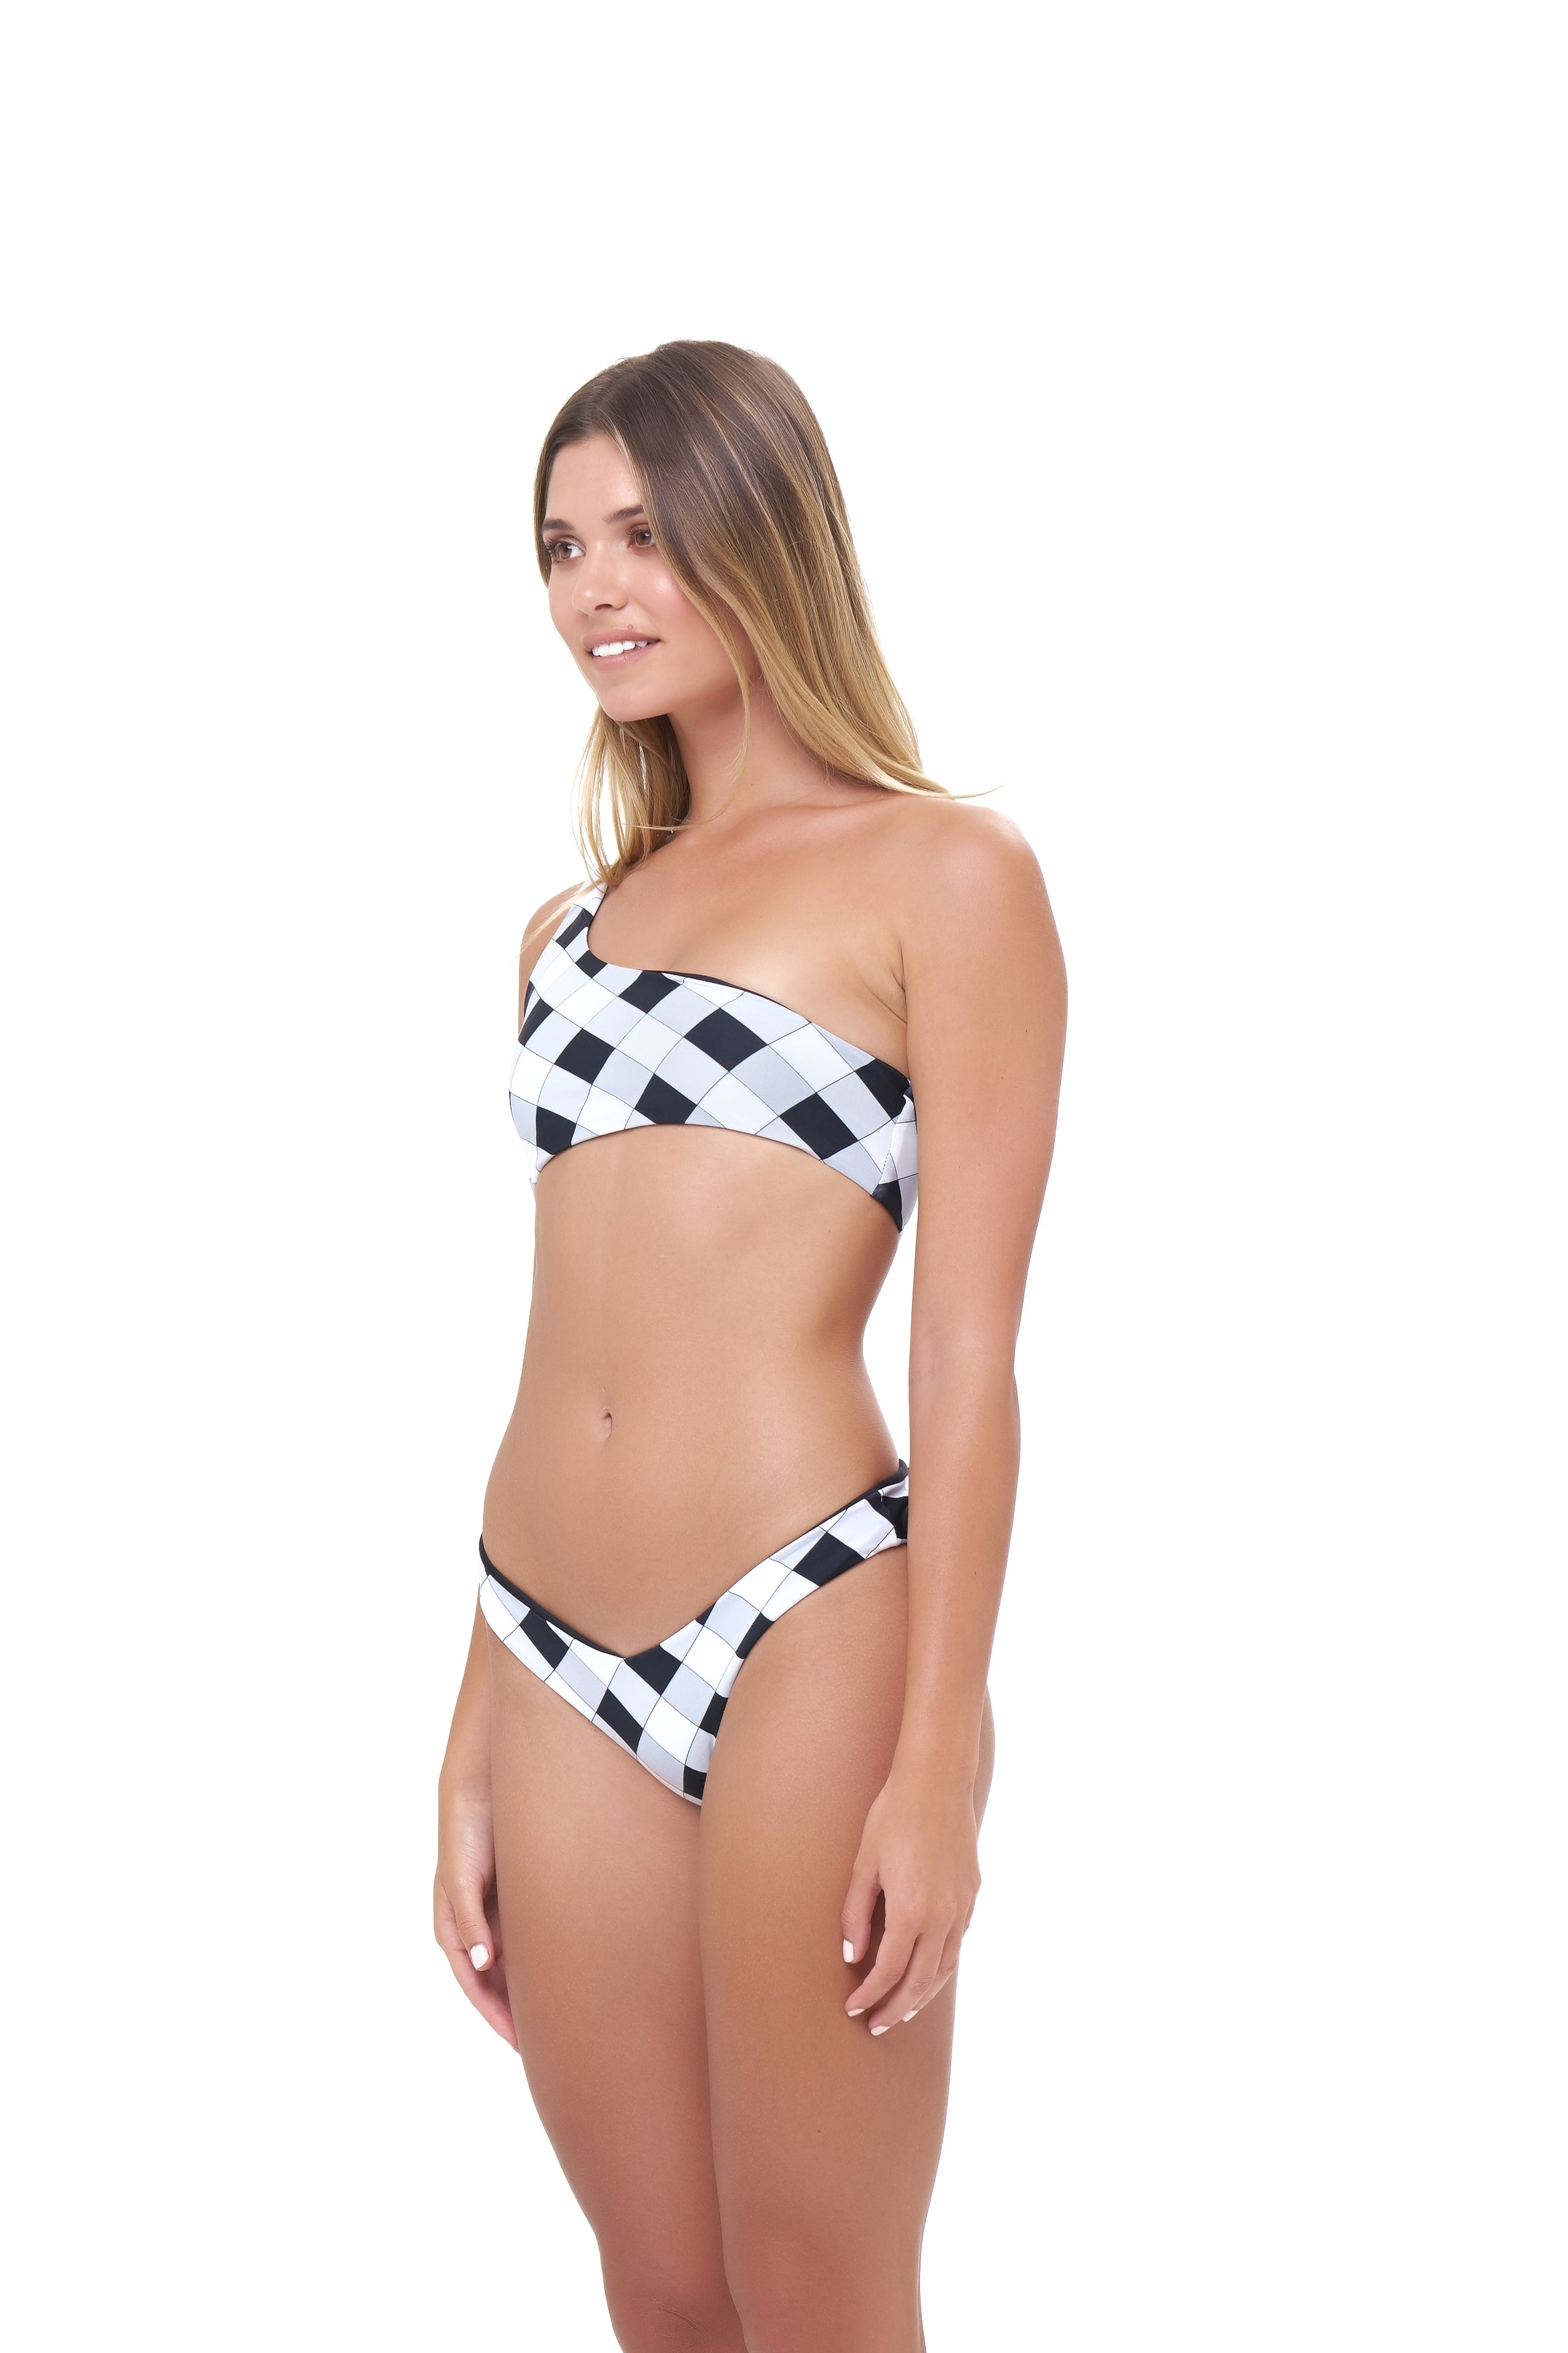 6f77a36361 Storm Swimwear - Cinque Terre - One shoulder bikini top in Rever Print  Black – Tropicanaonline